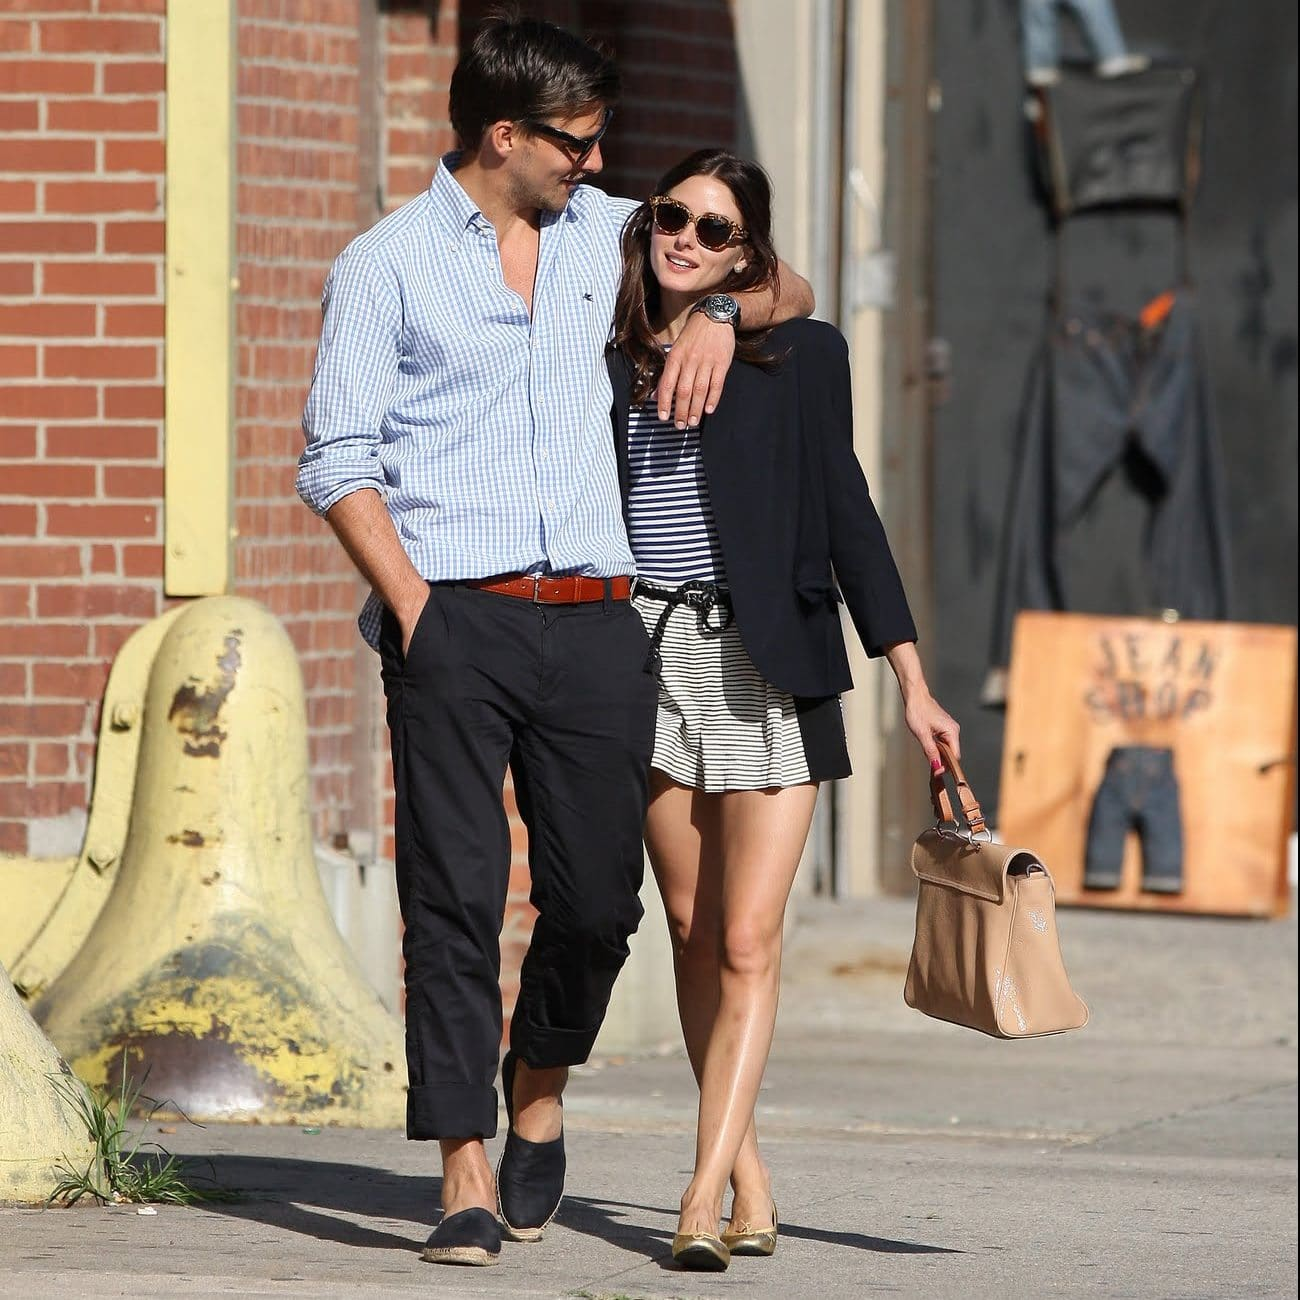 A casual date first on men what to wear 10 Ideas